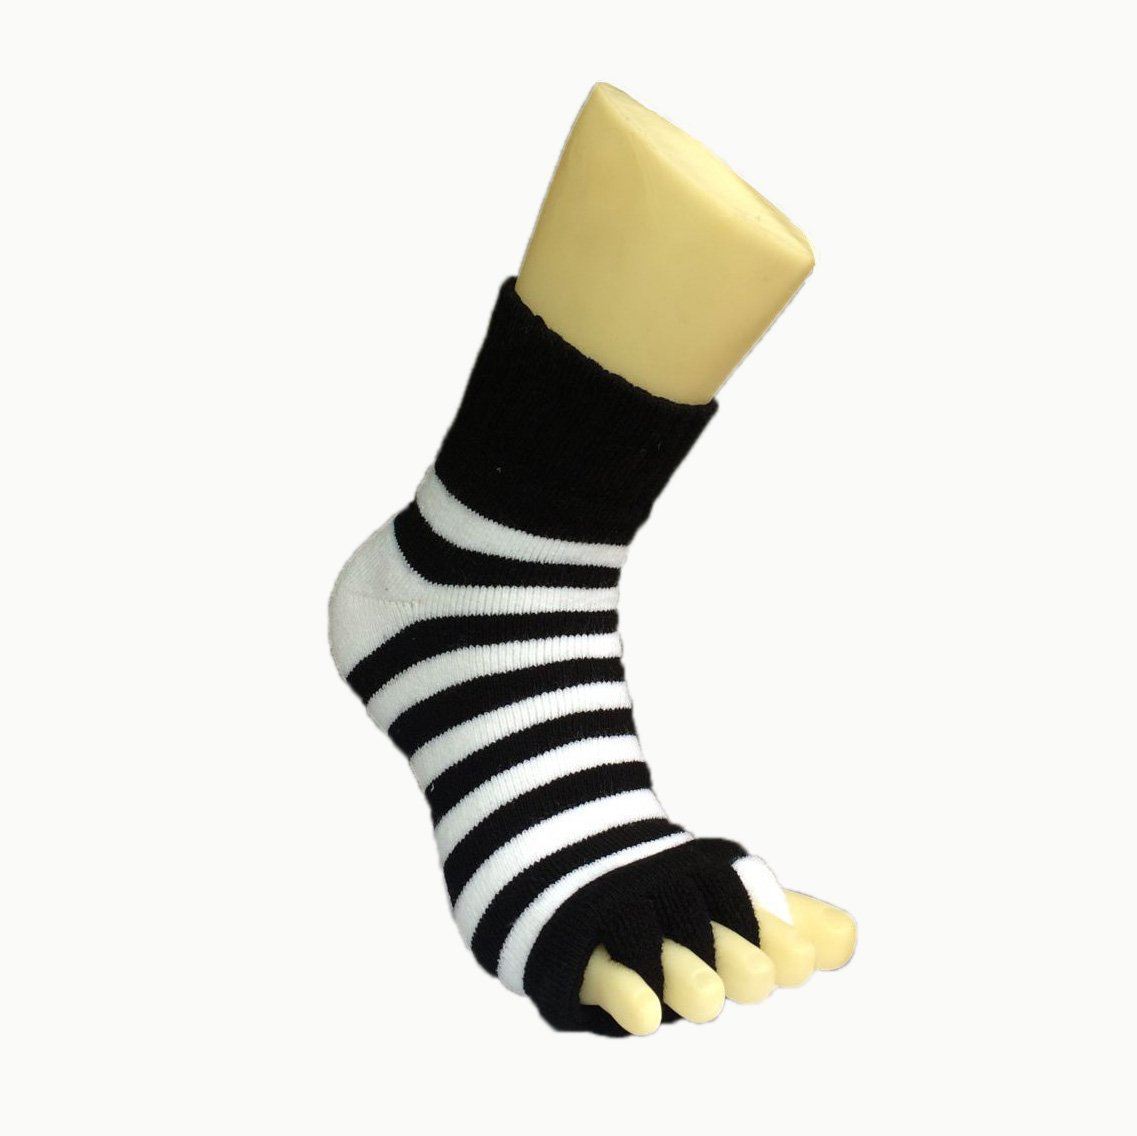 Moja Sports (Black/White, 1Pair) Toes Alignment Socks Open Five Toe Separator Spacer Relaxing Comfort Tendon Pain Relief Comfy Foot Sock Yoga Gym Pedicure (Black/White : 1 Pair, Medium) by Moja Sports (Image #2)